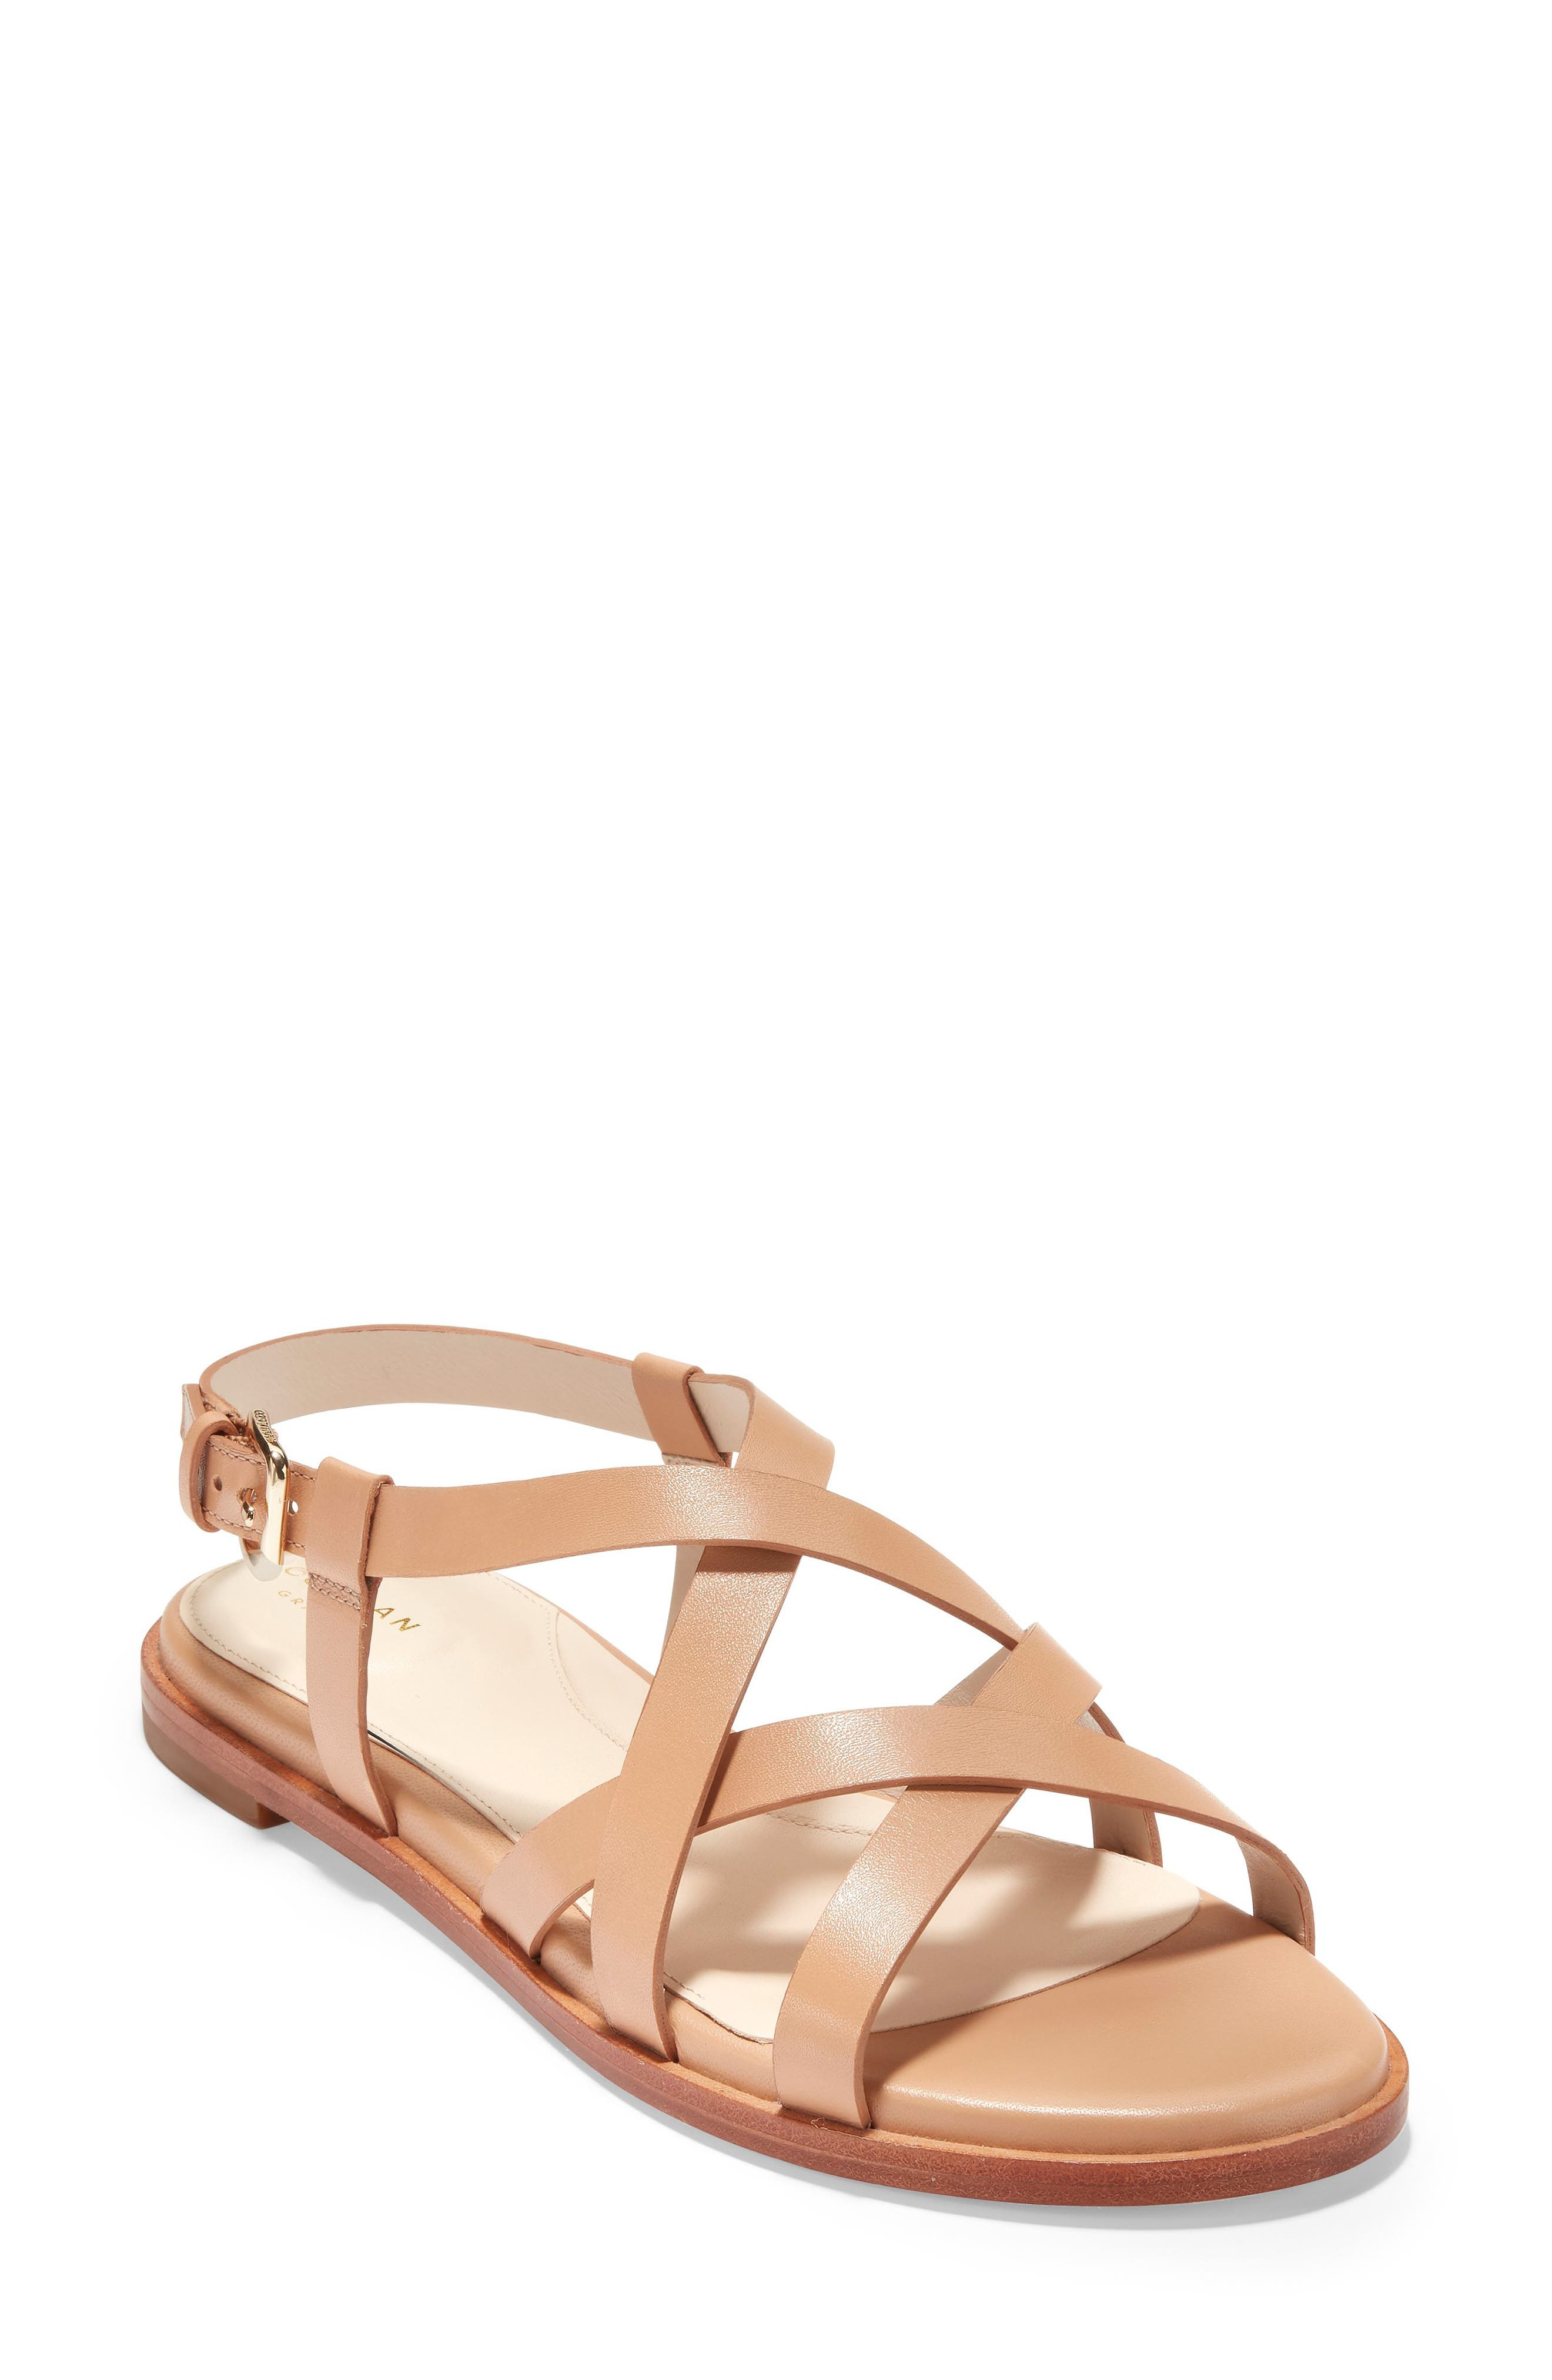 Cole Haan Analeigh Strappy Sandal, Brown